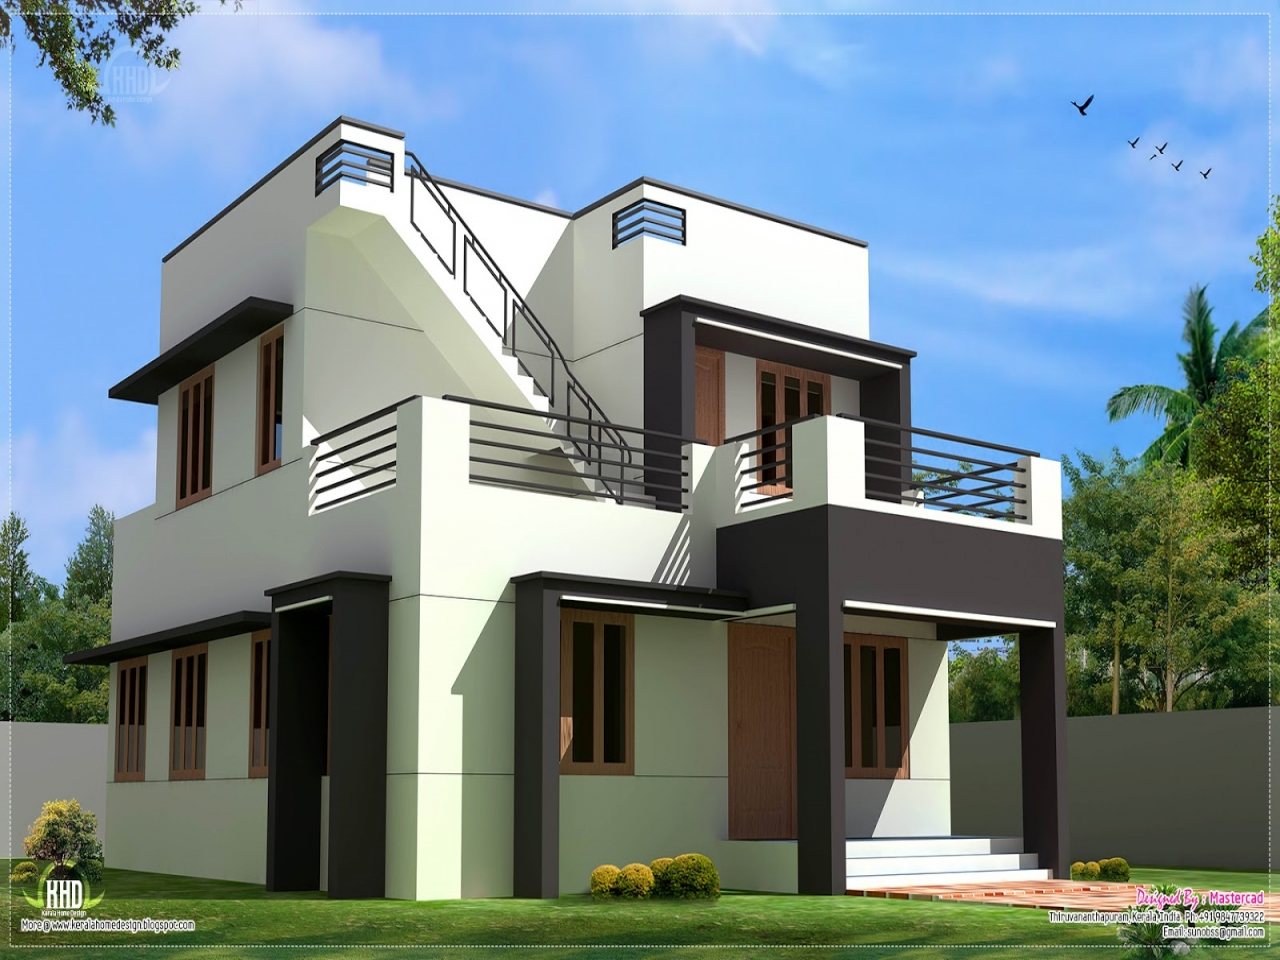 Design home modern house plans modern contemporary home for Exterior home design free online